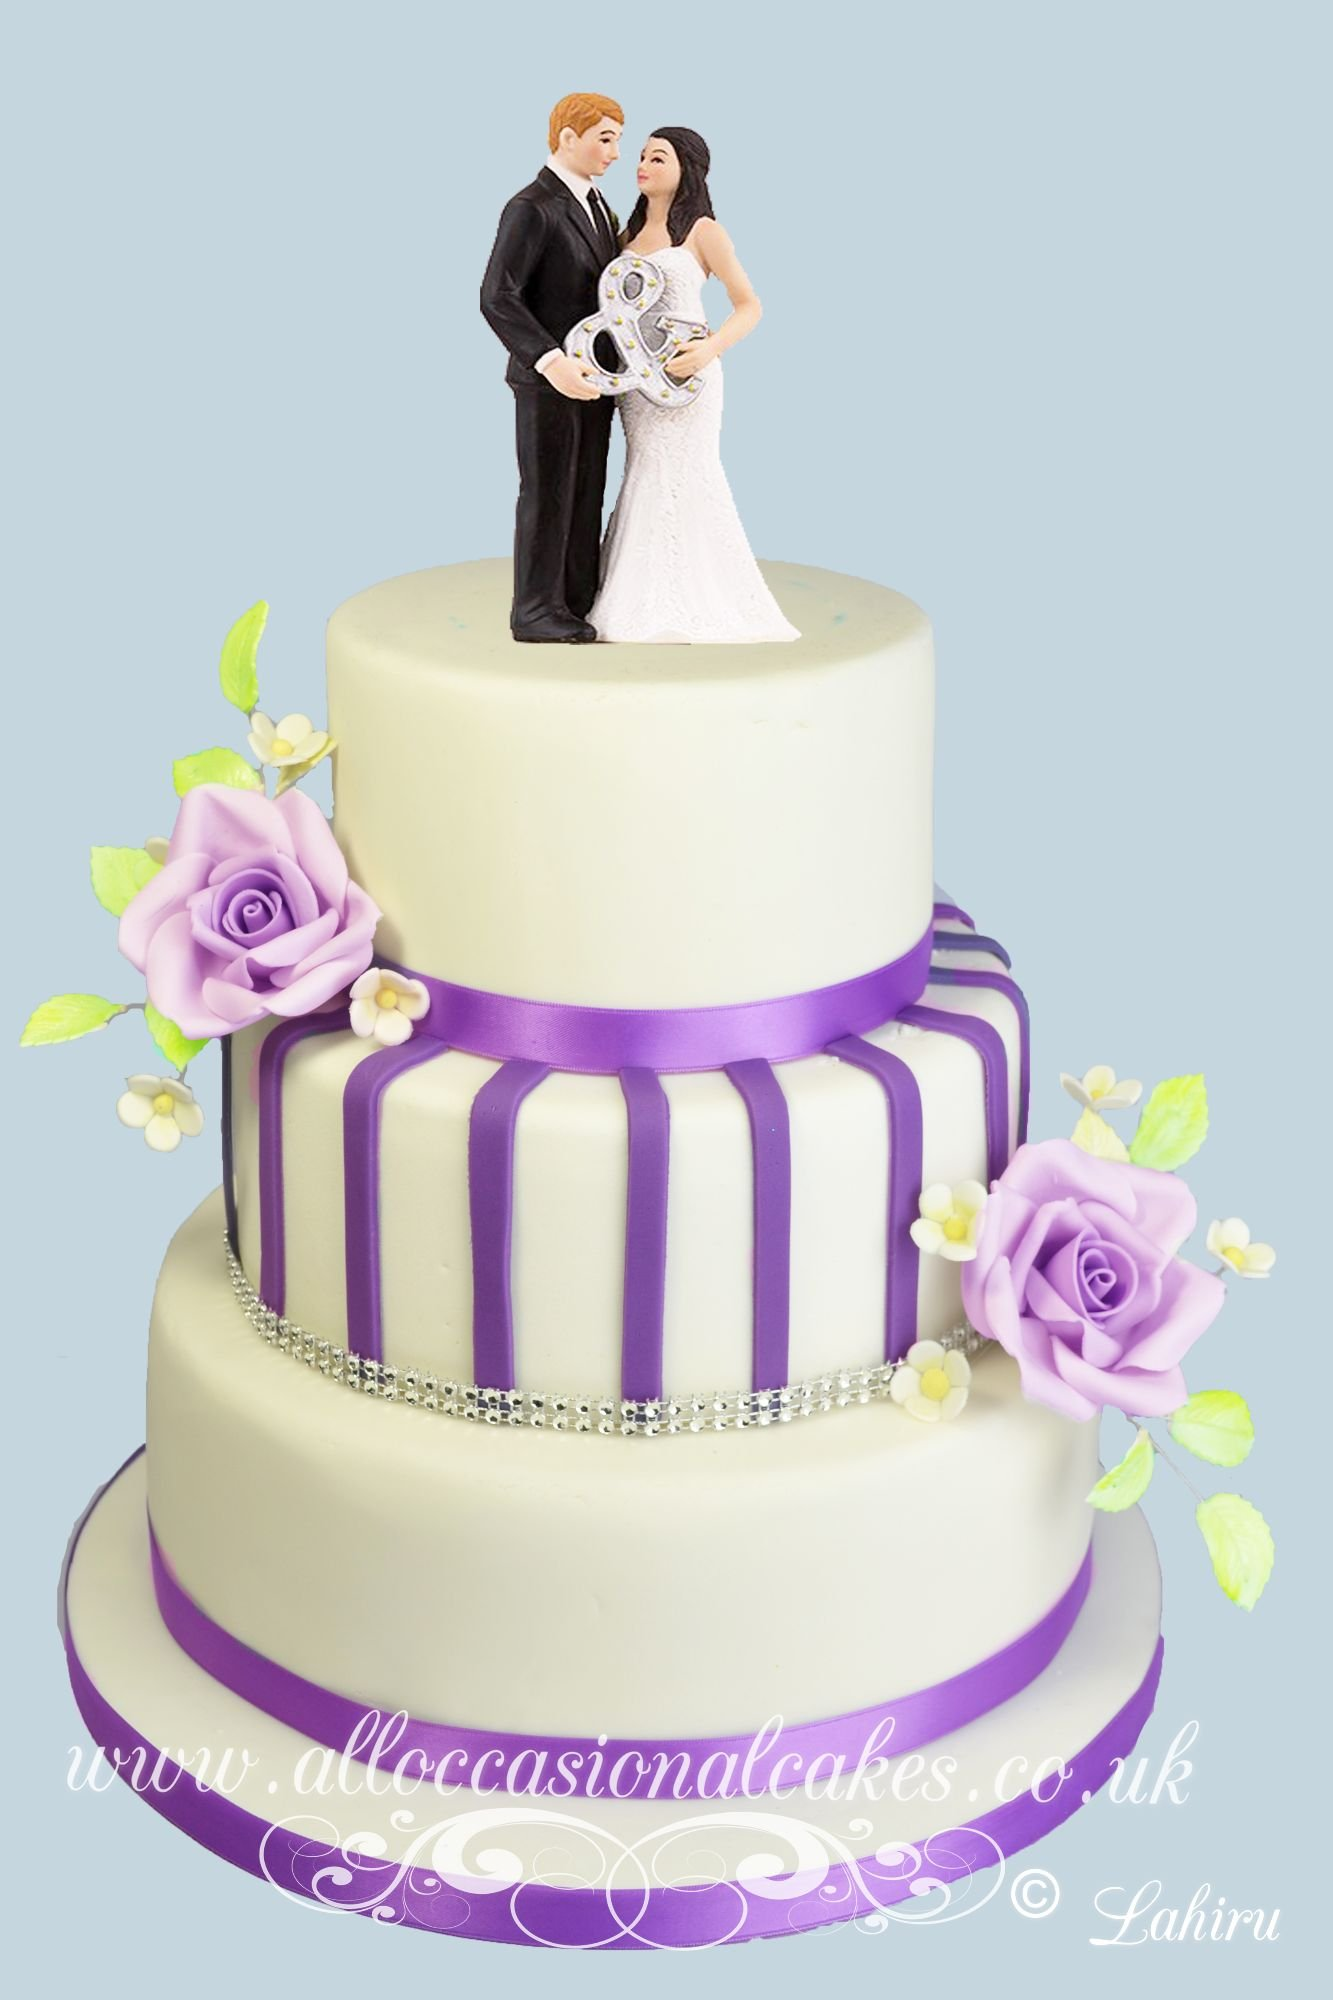 You & Me wedd elegant wedding cake Bristol